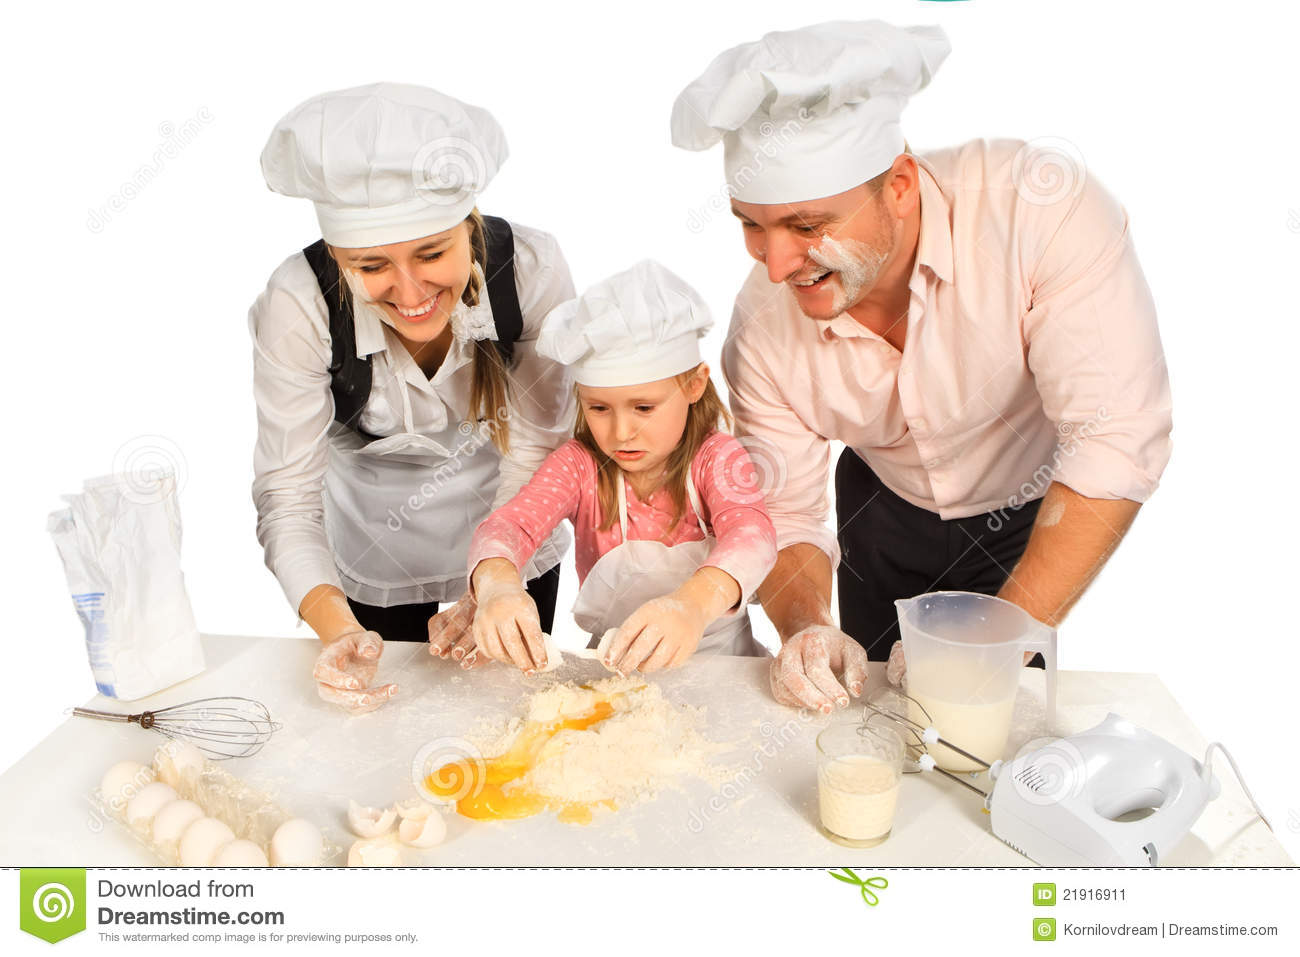 family-cooking-together-21916911.jpg